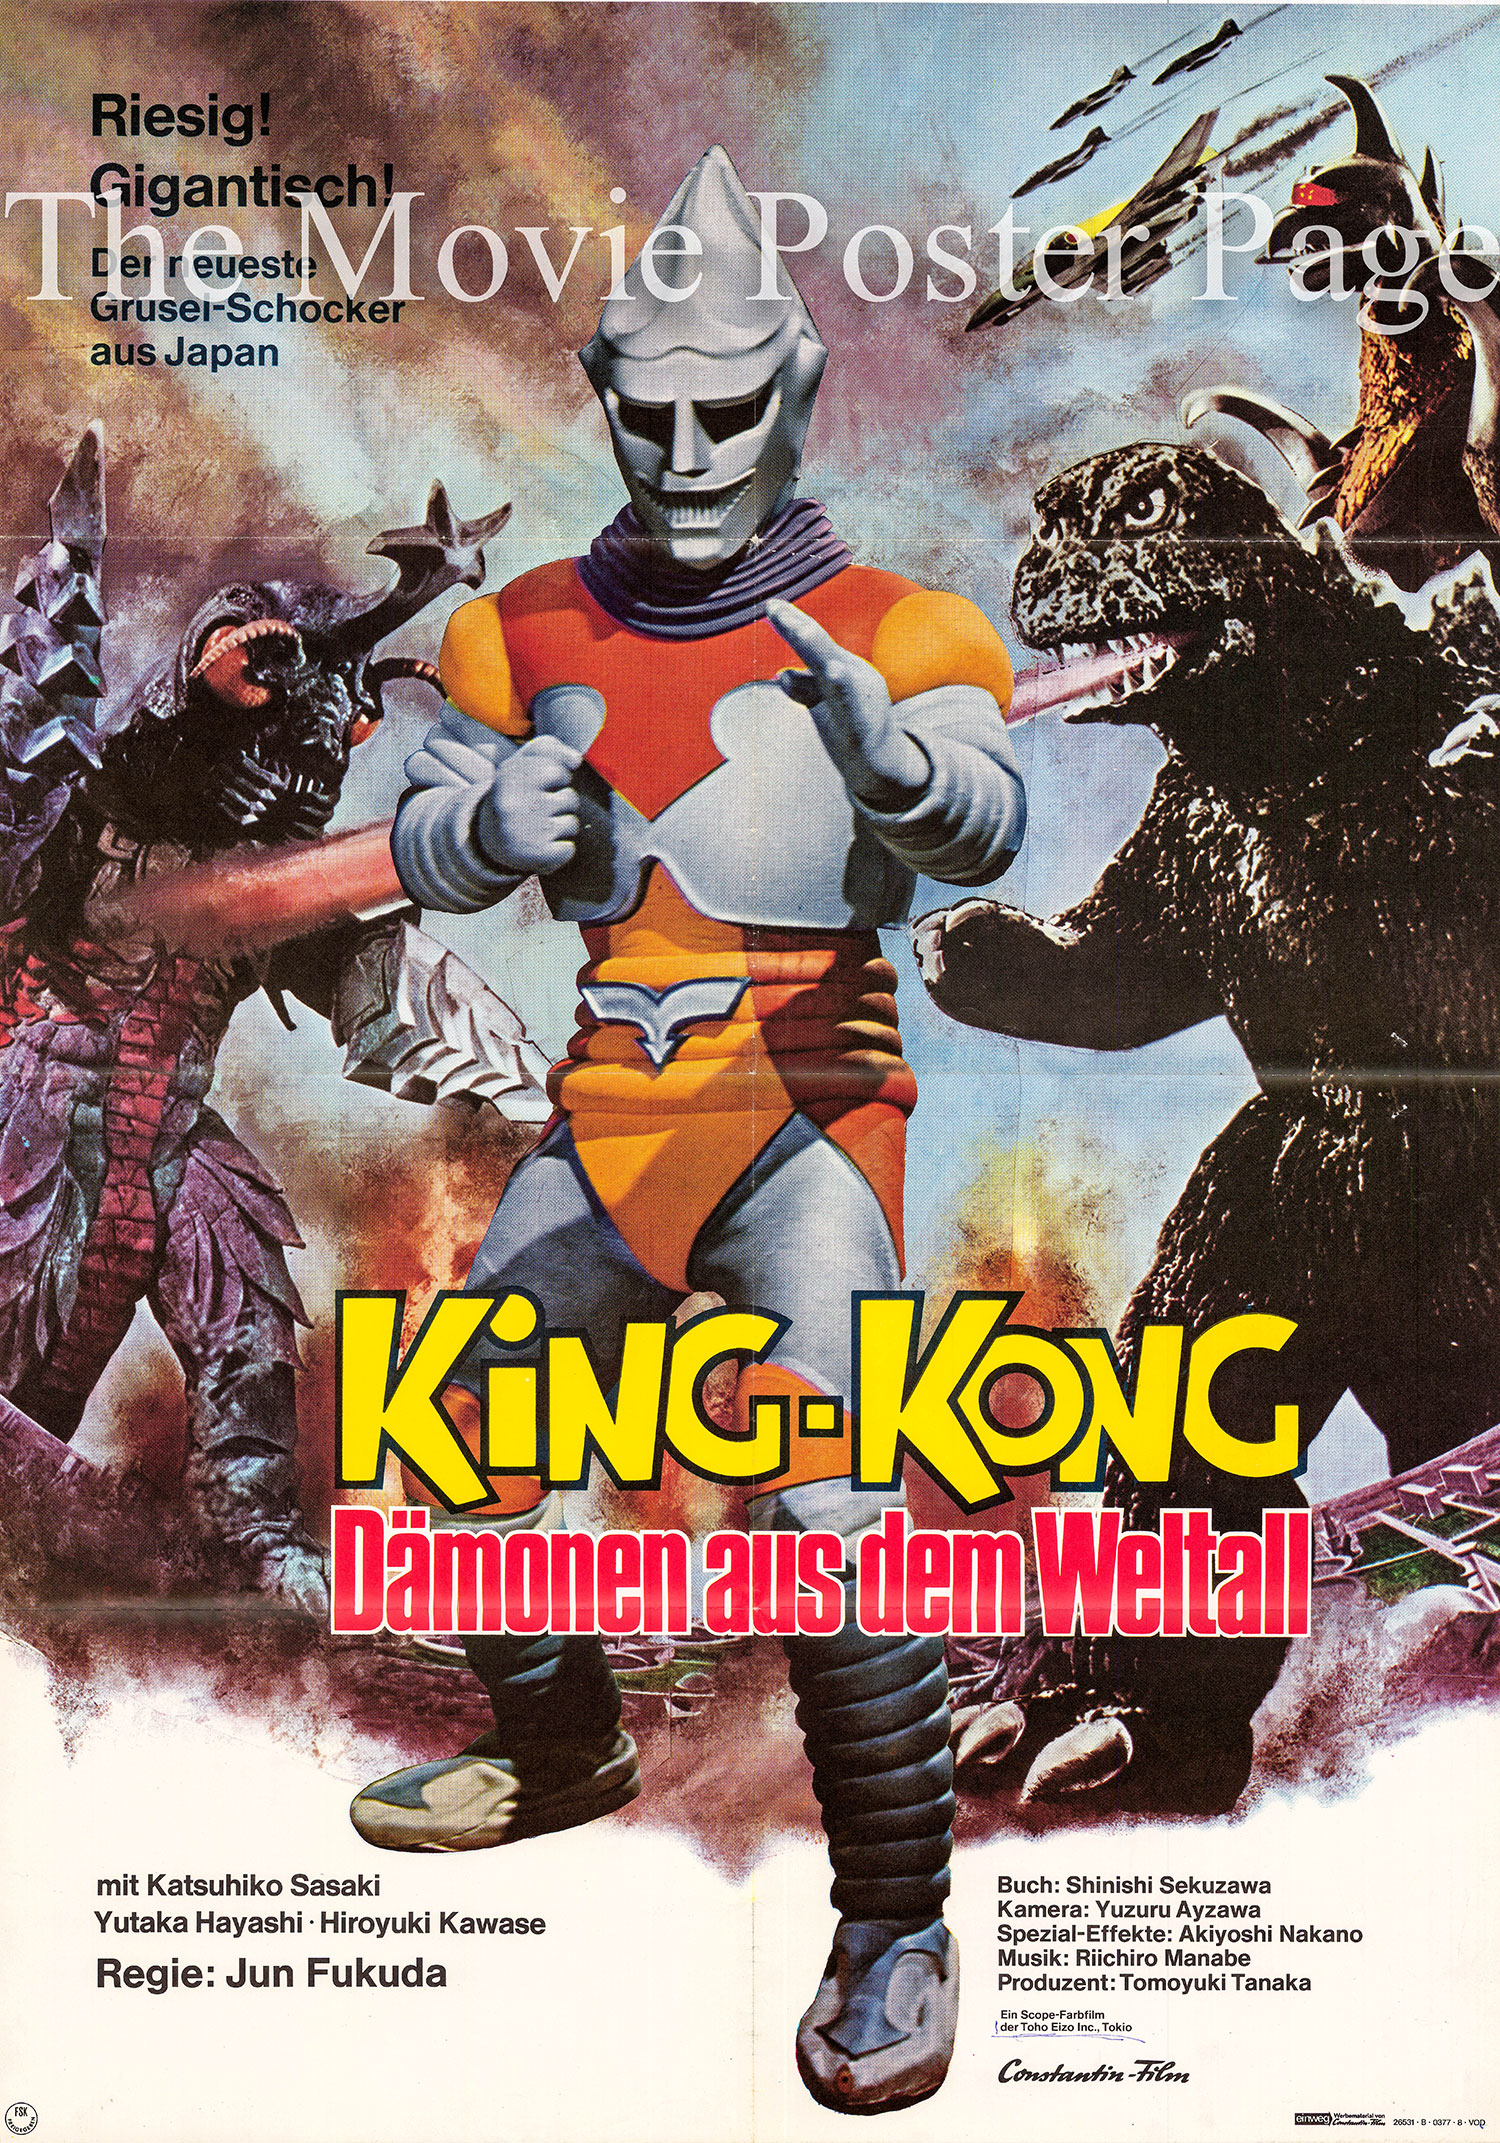 Pictured is a German one-sheet promotional poster for the 1973 Jun Fukuda film Godzilla vs. Megalon starring Katsuhiko Sasaki as Inventor Goro Ibuki.